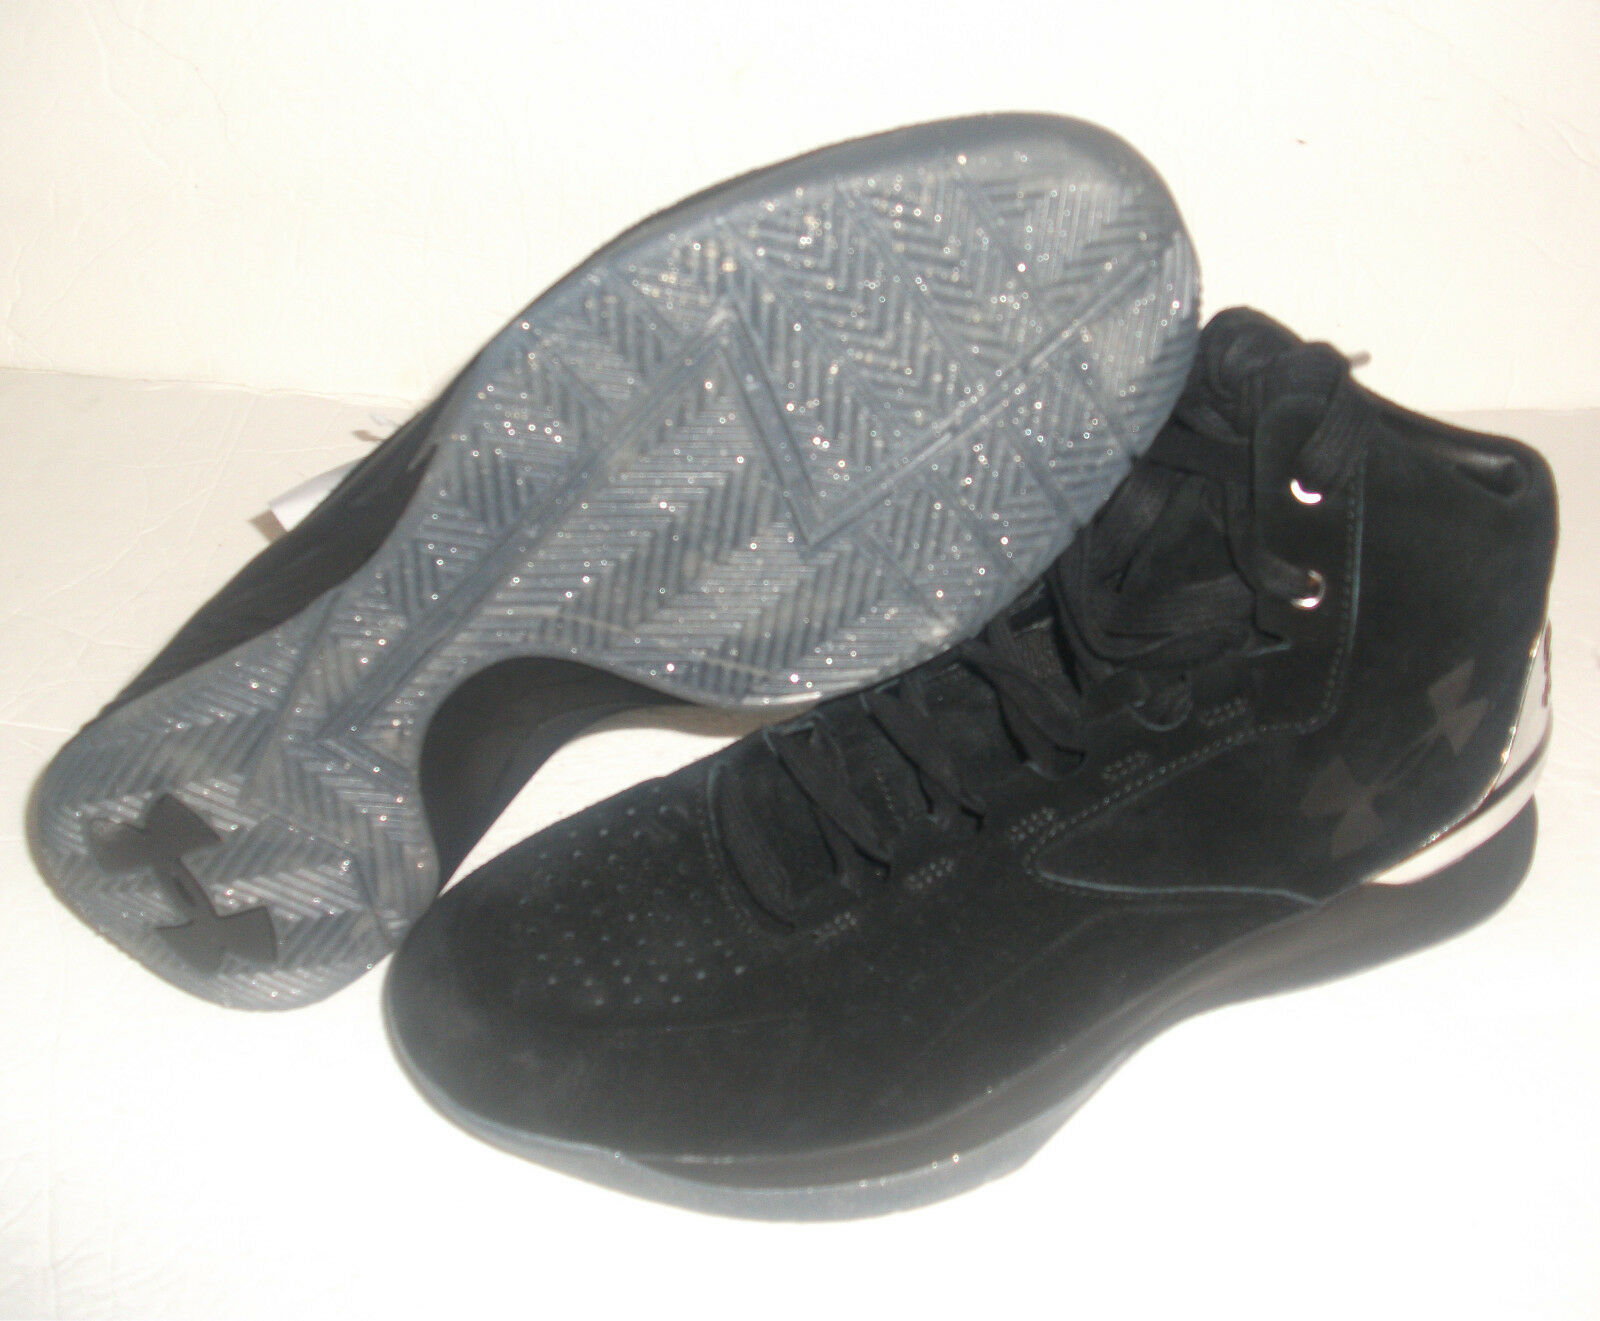 New under negro, armour 1 lux MID SUEDE, multi tamaño, negro, under 1296617-001 Steph curry a84bf8